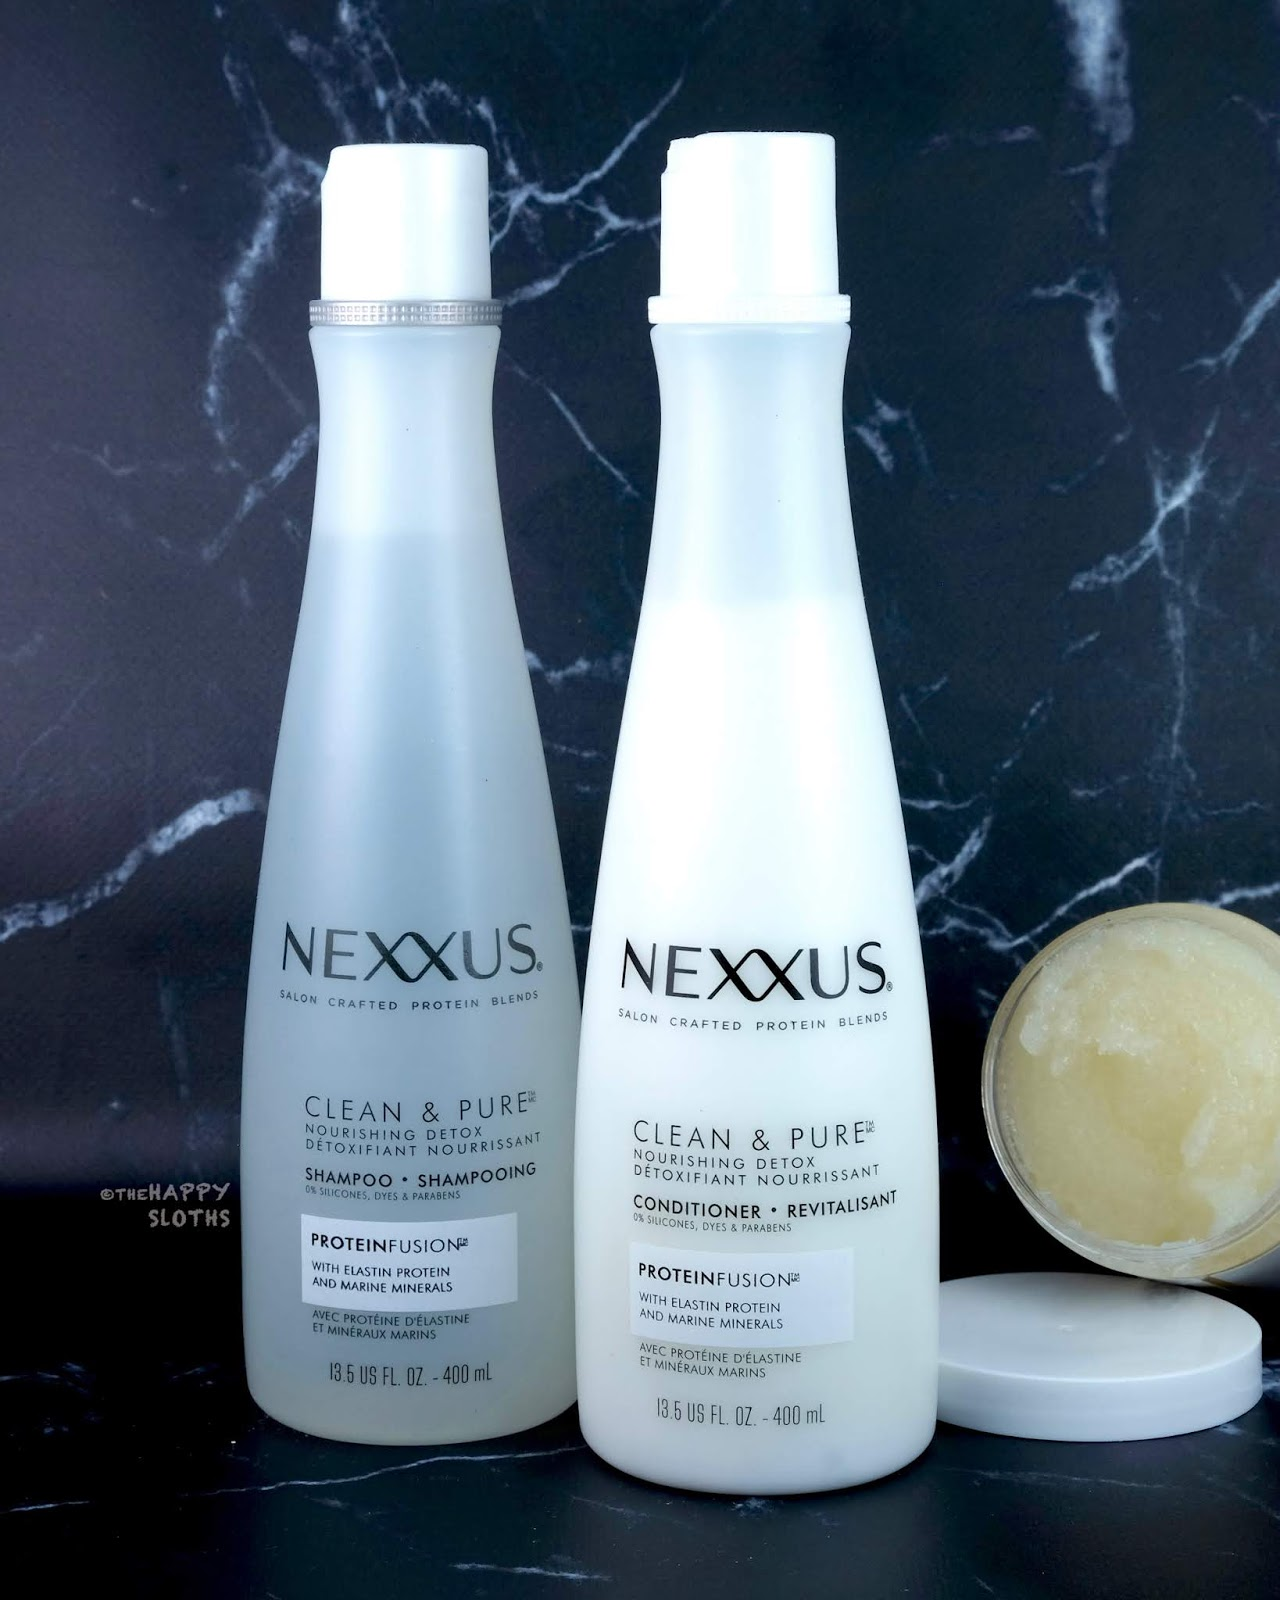 Nexxus | Clean & Pure Nourishing Detox Shampoo & Conditioner: Review